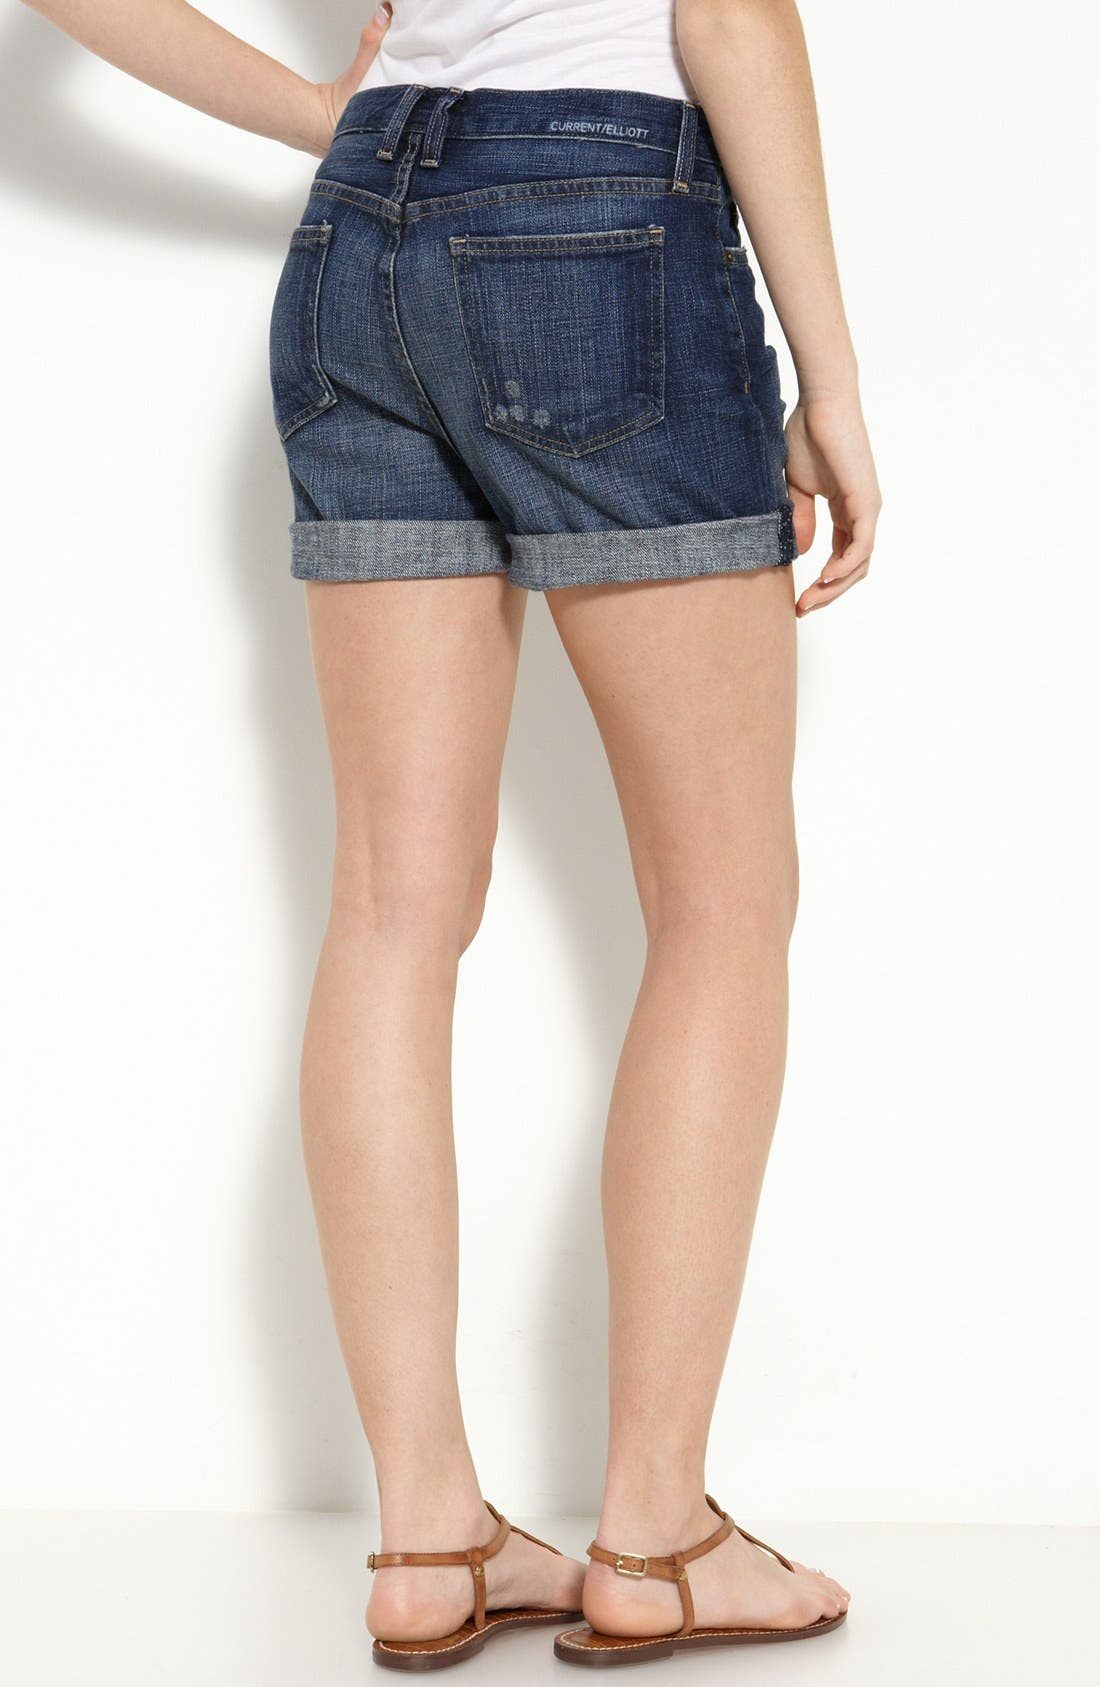 Alternate Image 1 Selected - Current/Elliott 'The Roll' Stretch Denim Shorts (Loved Wash)